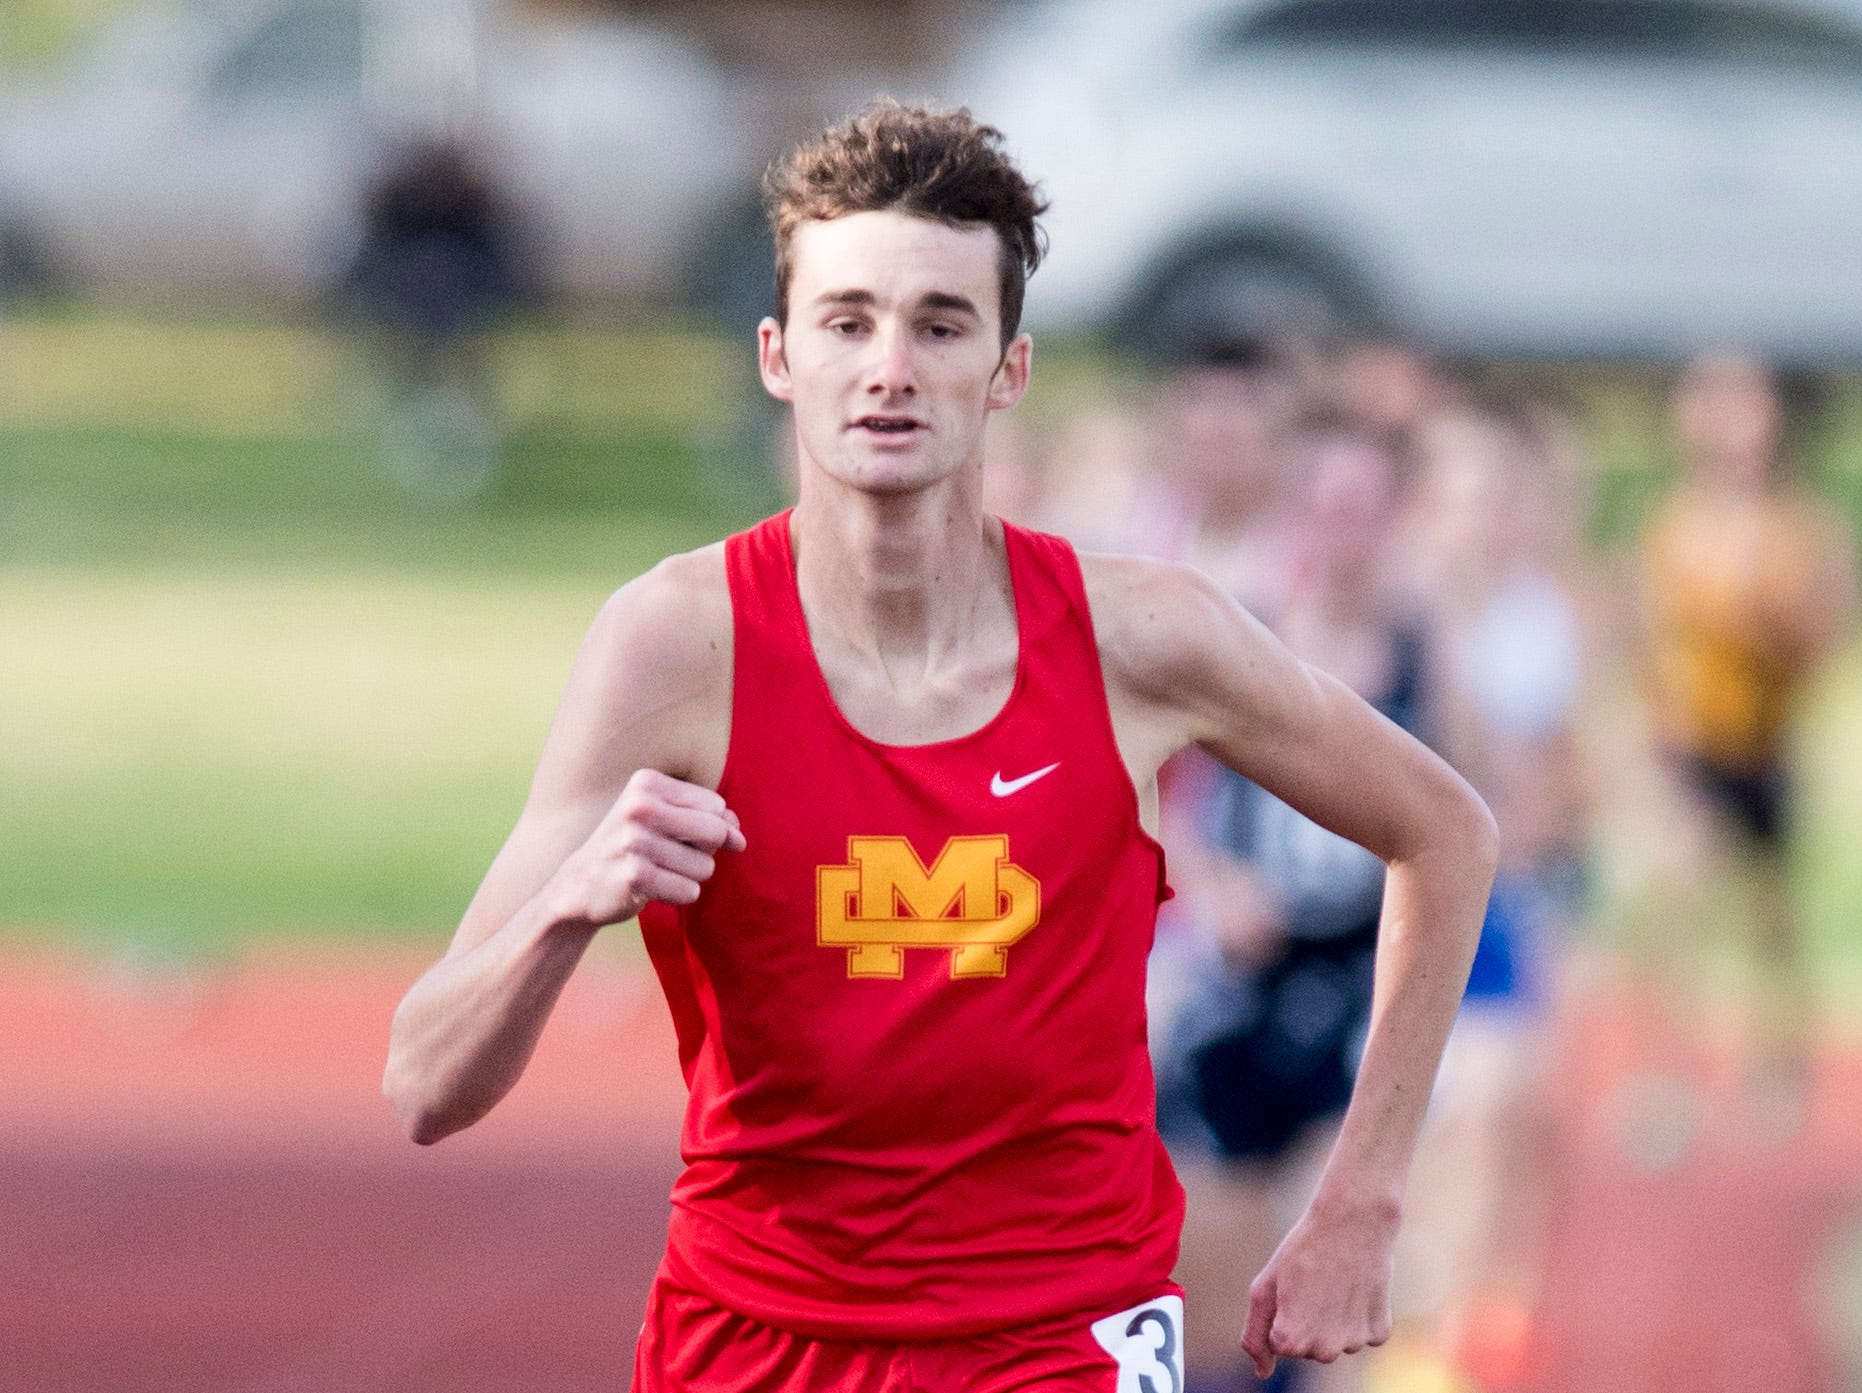 Mater Dei's Tanner Schickel puts a heavy gap between him and other runners in the boys 1600m run event during the 2019 City Track and Field meet at Central high School Friday, April 12, 2019. Schickel placed first in the event at four minutes and 35.55 seconds.